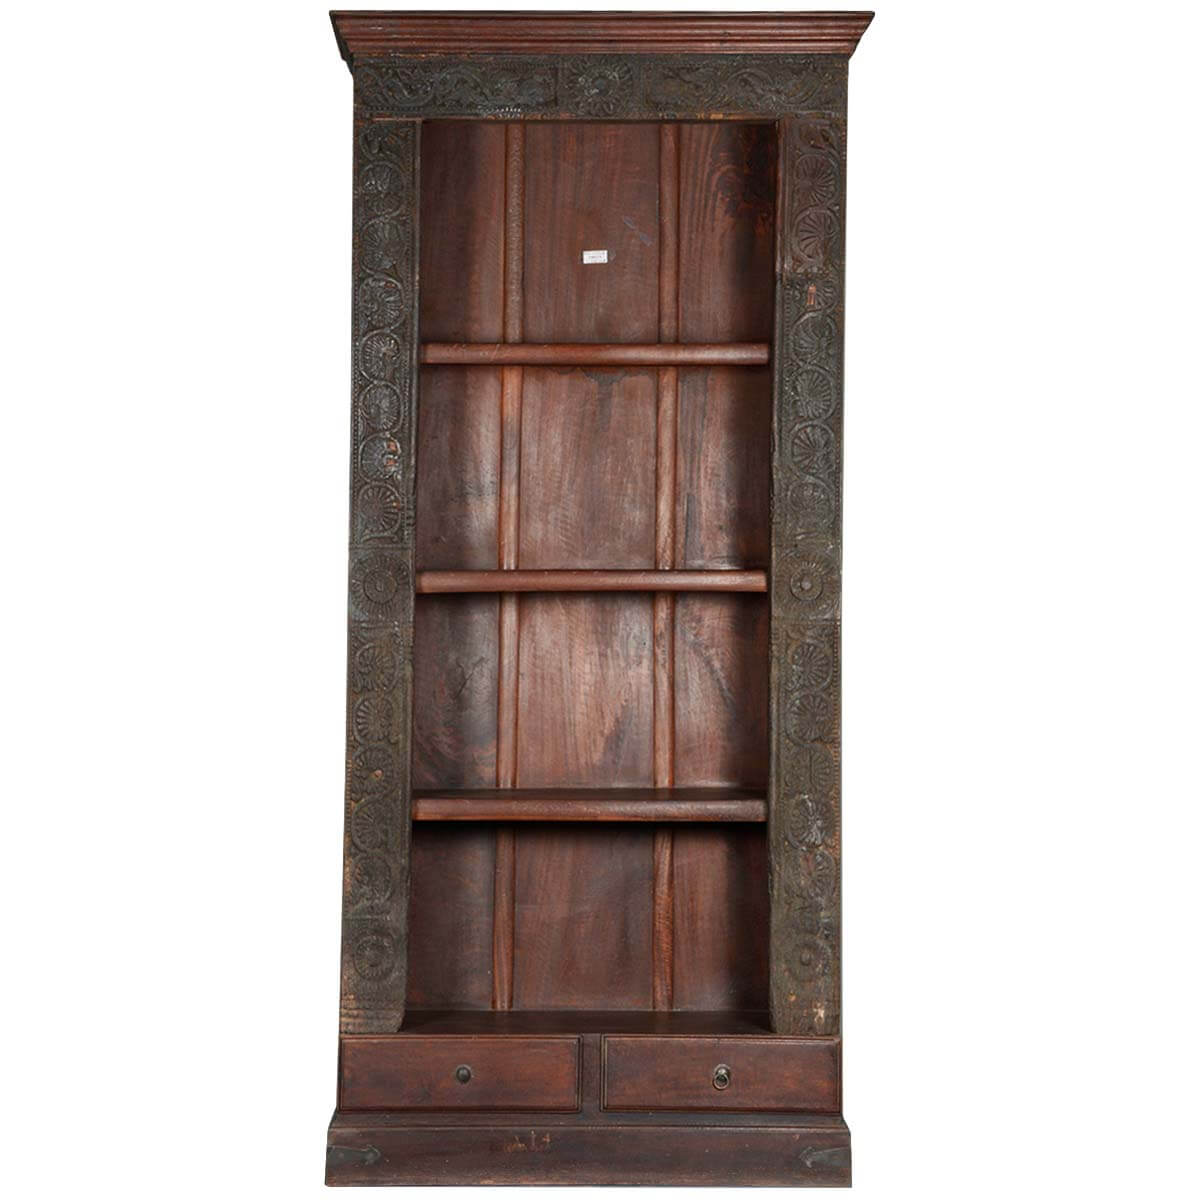 Reclaimed Wood Bookcase ~ Gothic reclaimed wood shelf open display bookcase w